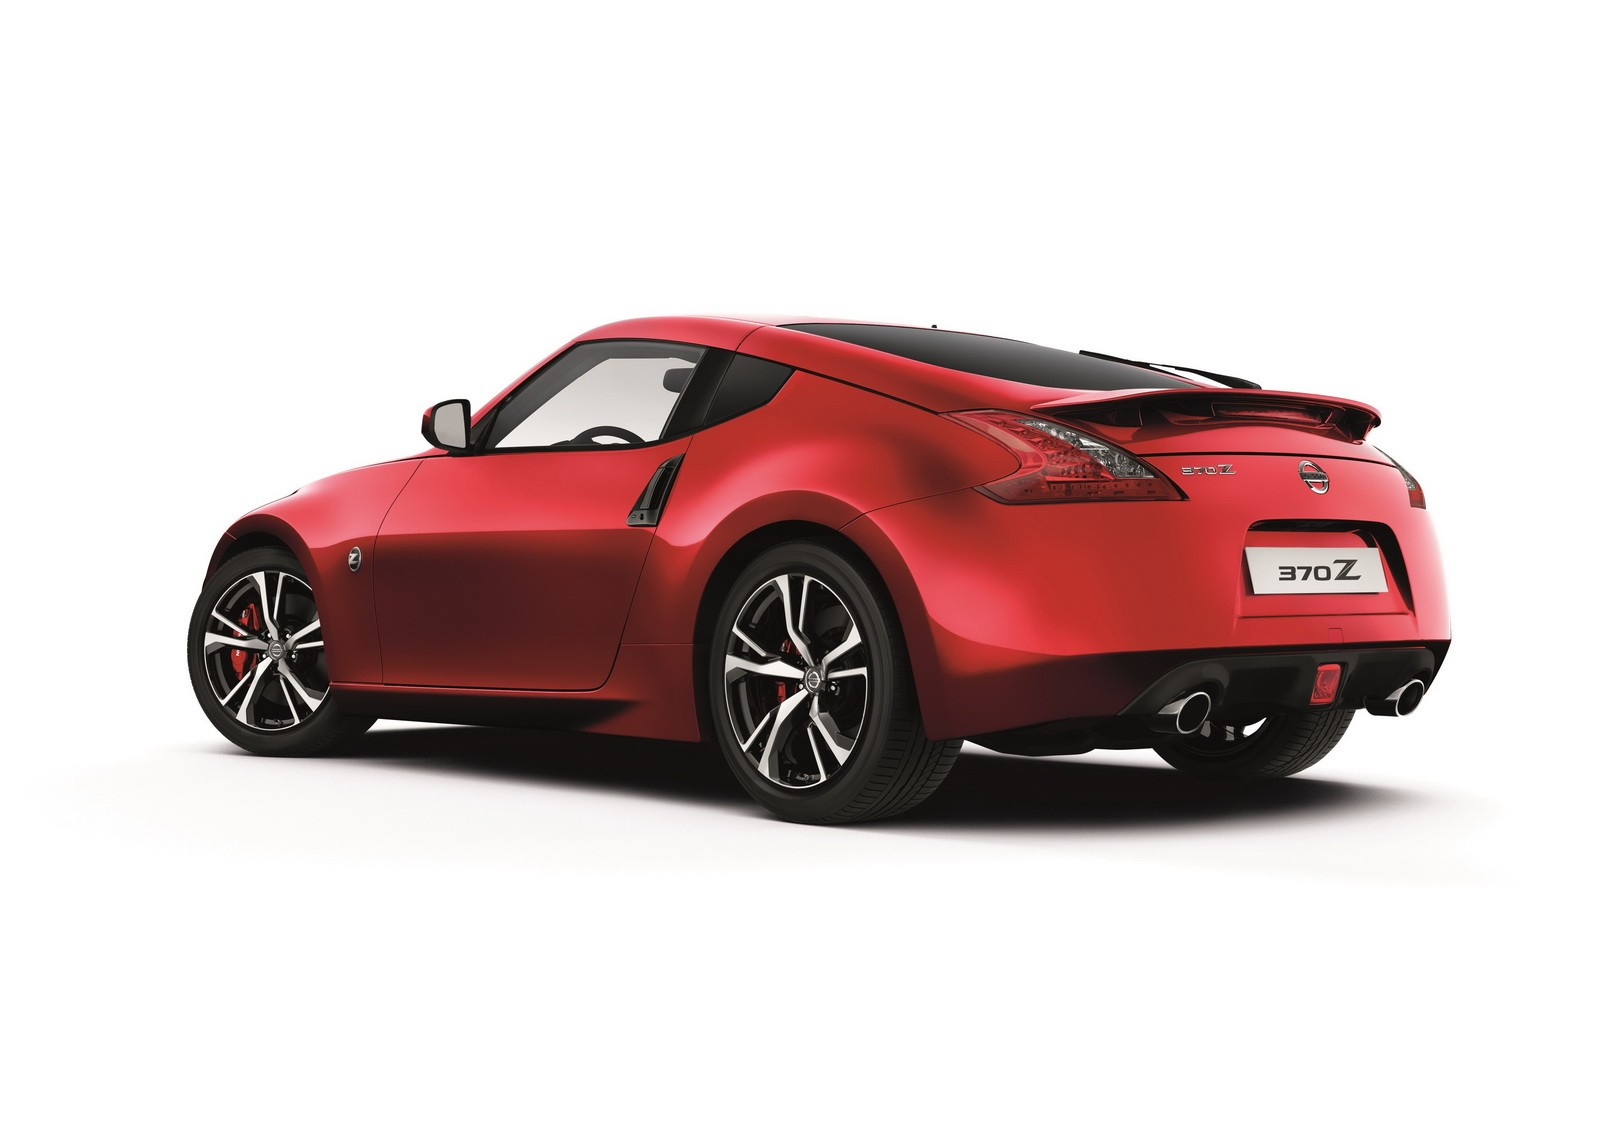 2018 Nissan 370Z Revealed Ahead Of Frankfurt Motor Show ...